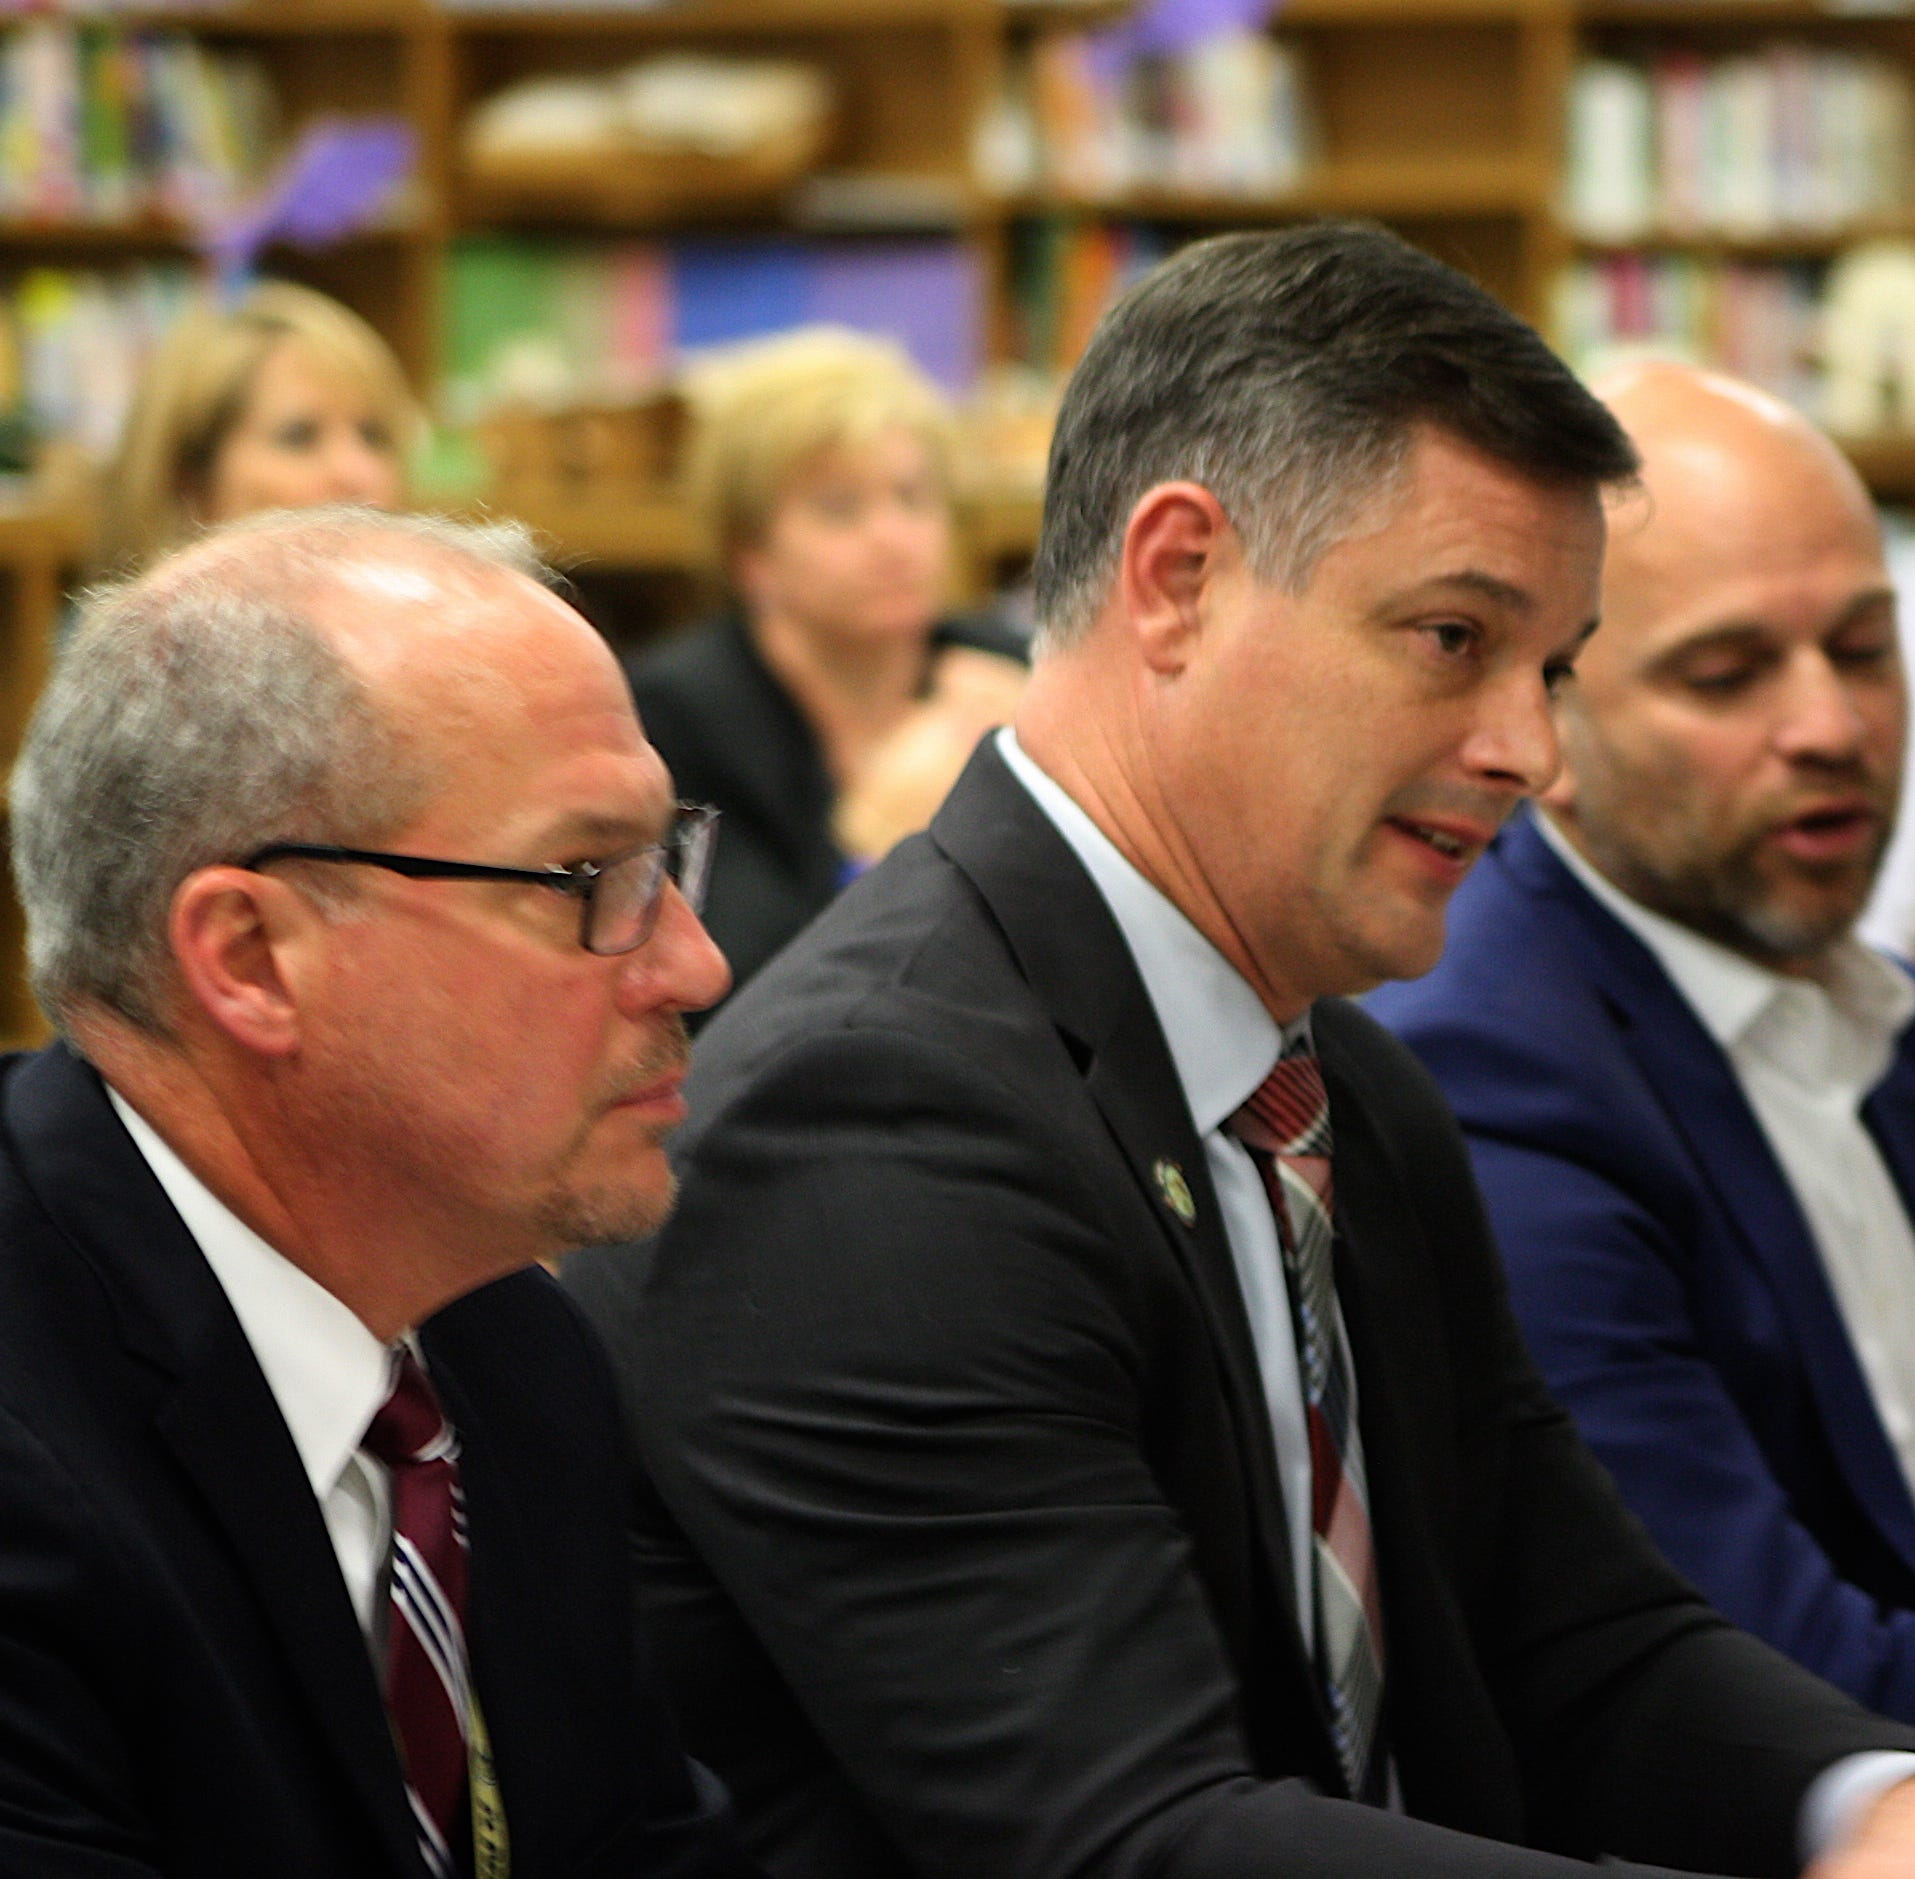 Time is up for Brevard School Board to fix teacher pay | Our view